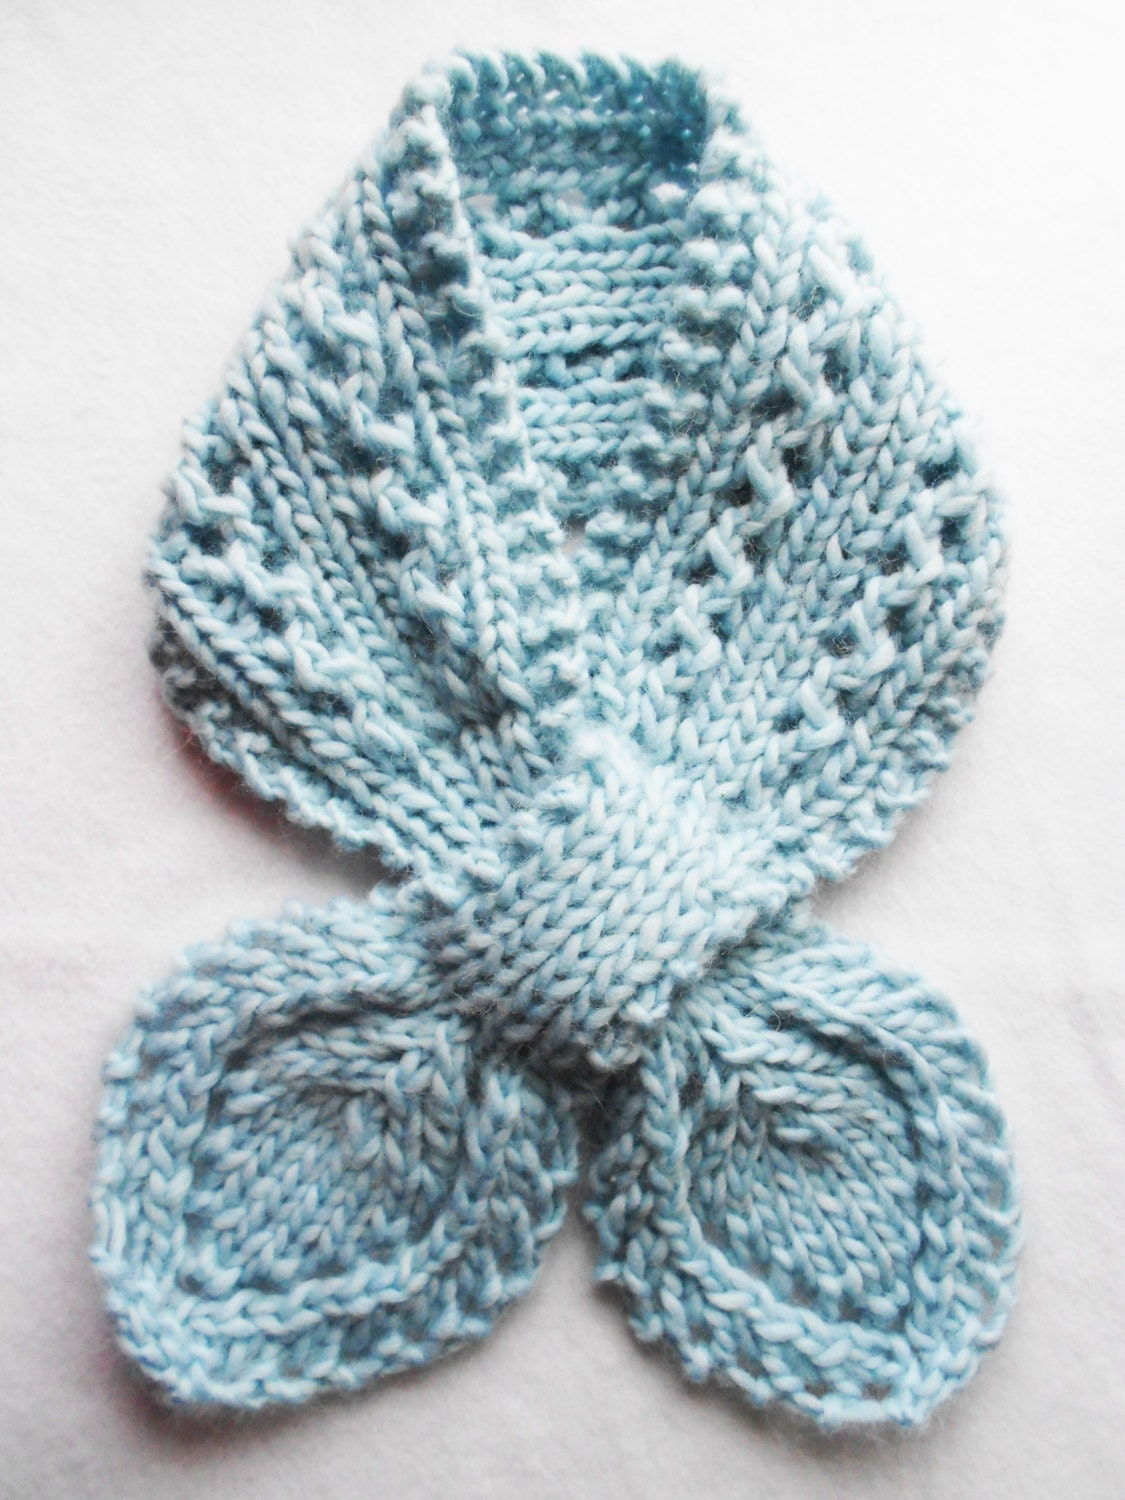 Bow Tie Knitting Pattern : Lace knitted bow tie scarf baby blue 100% wool adult by ...